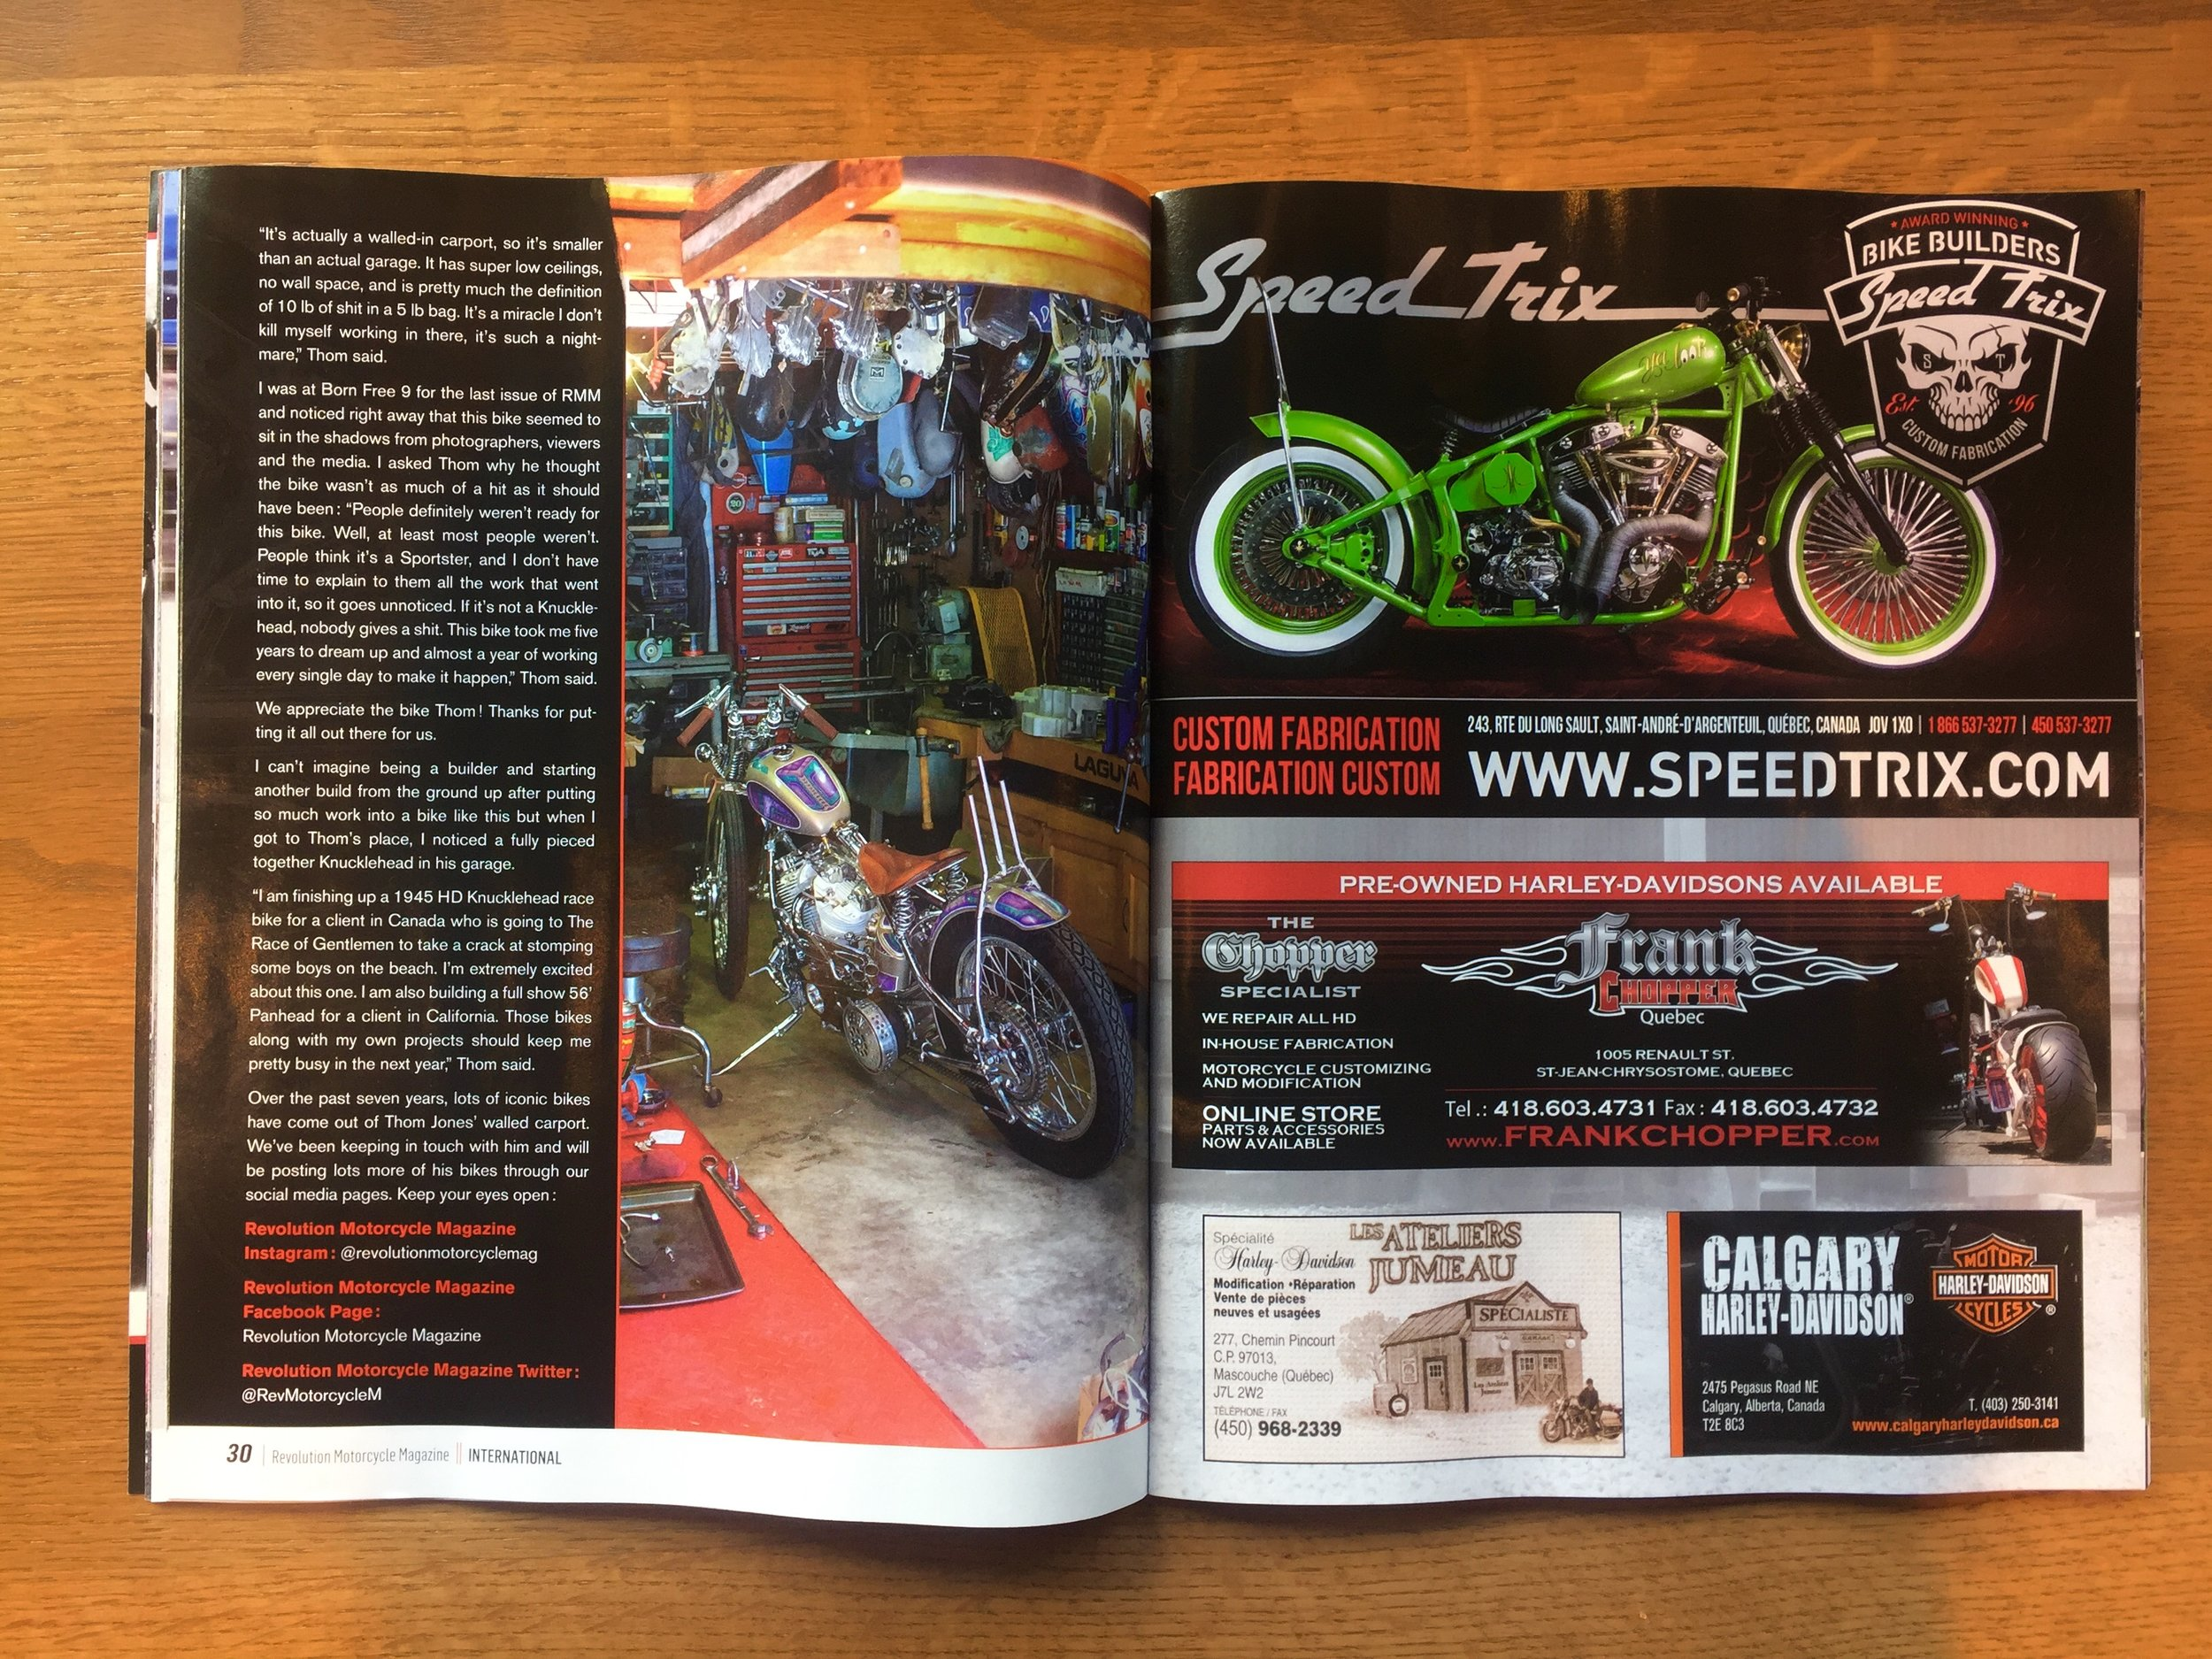 Thom Jones Revolution Motorcycle Magazine